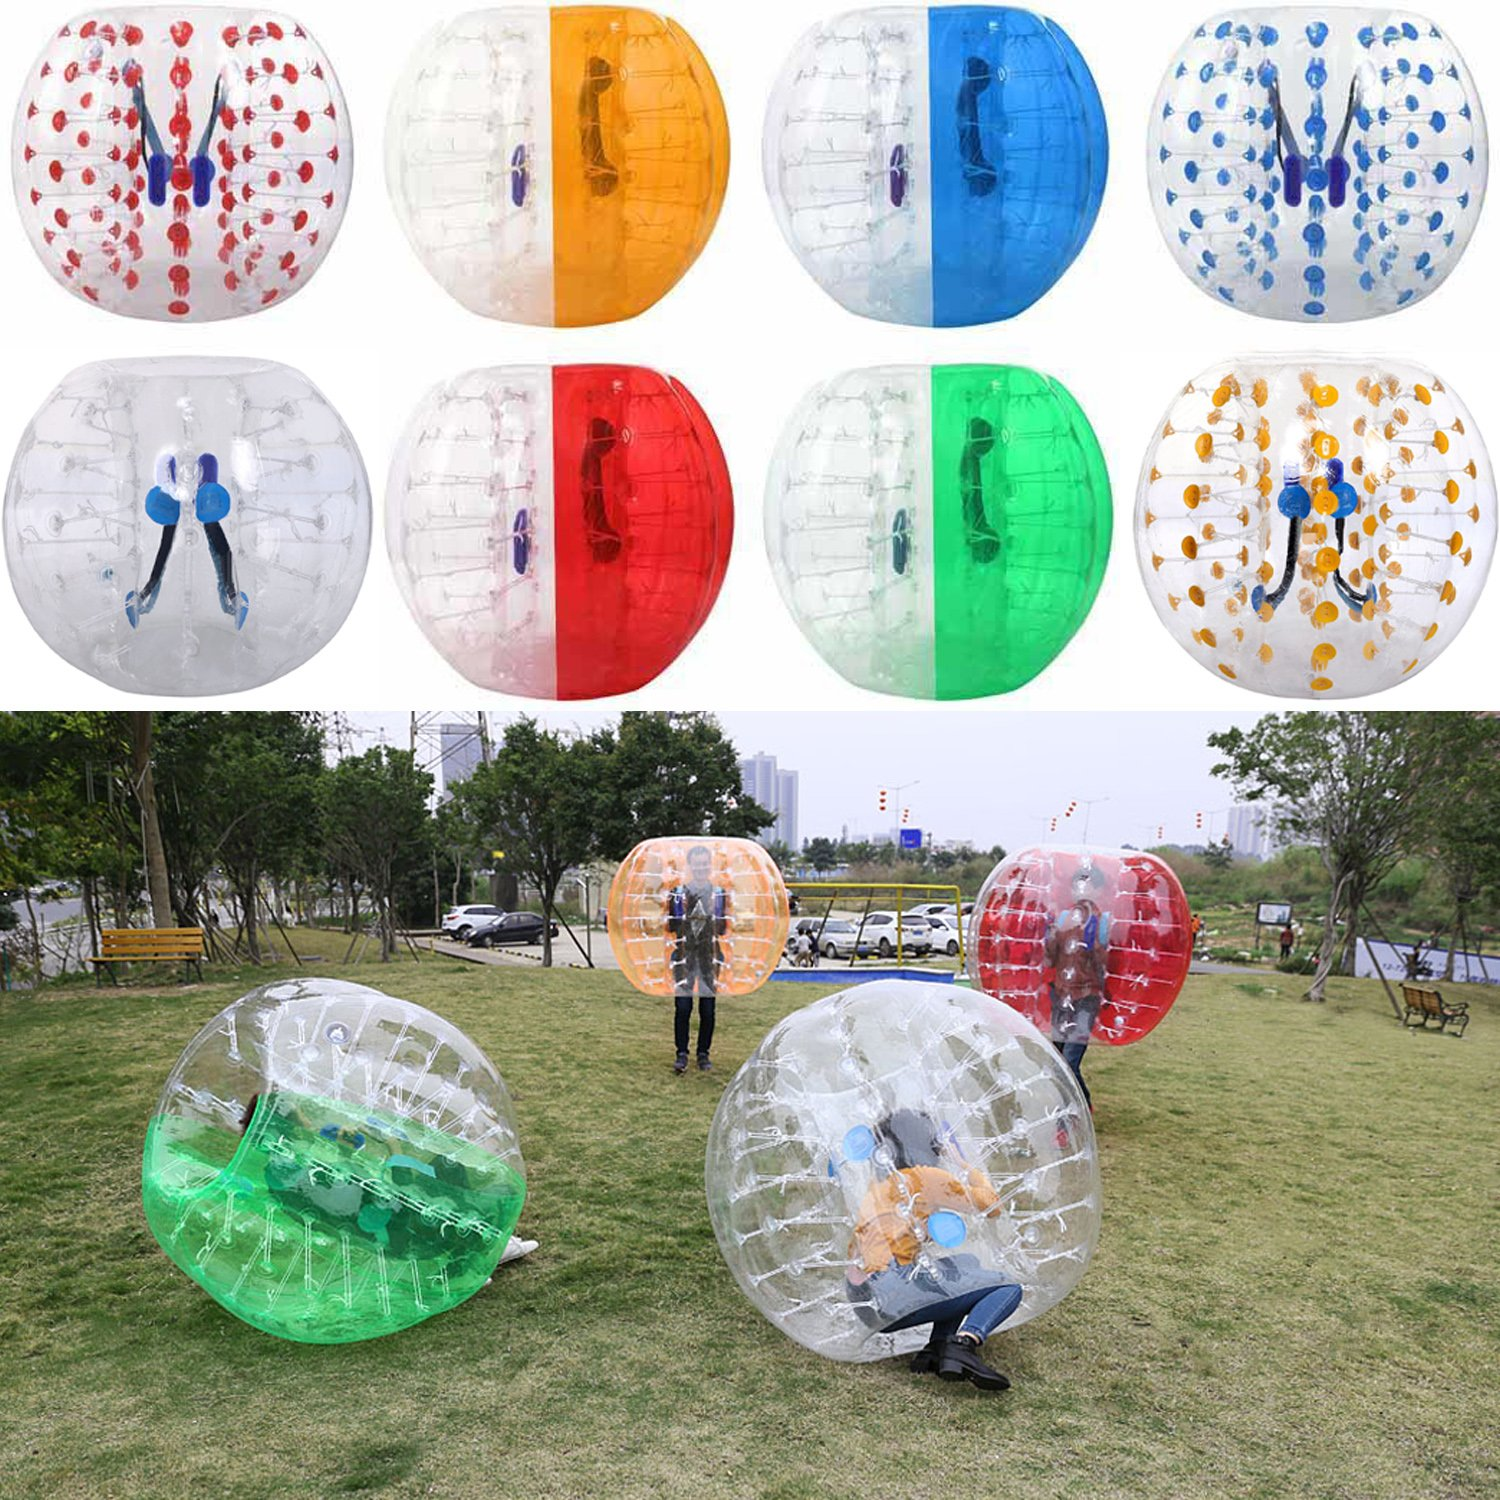 Tomasar Inflatable Bubble Soccer Ball Suit Human Bumper Football Zorb Knocker Balls for Adults and Kids Dia 5ft/4ft (1.5m/1.2m) (Green White, 5FT)